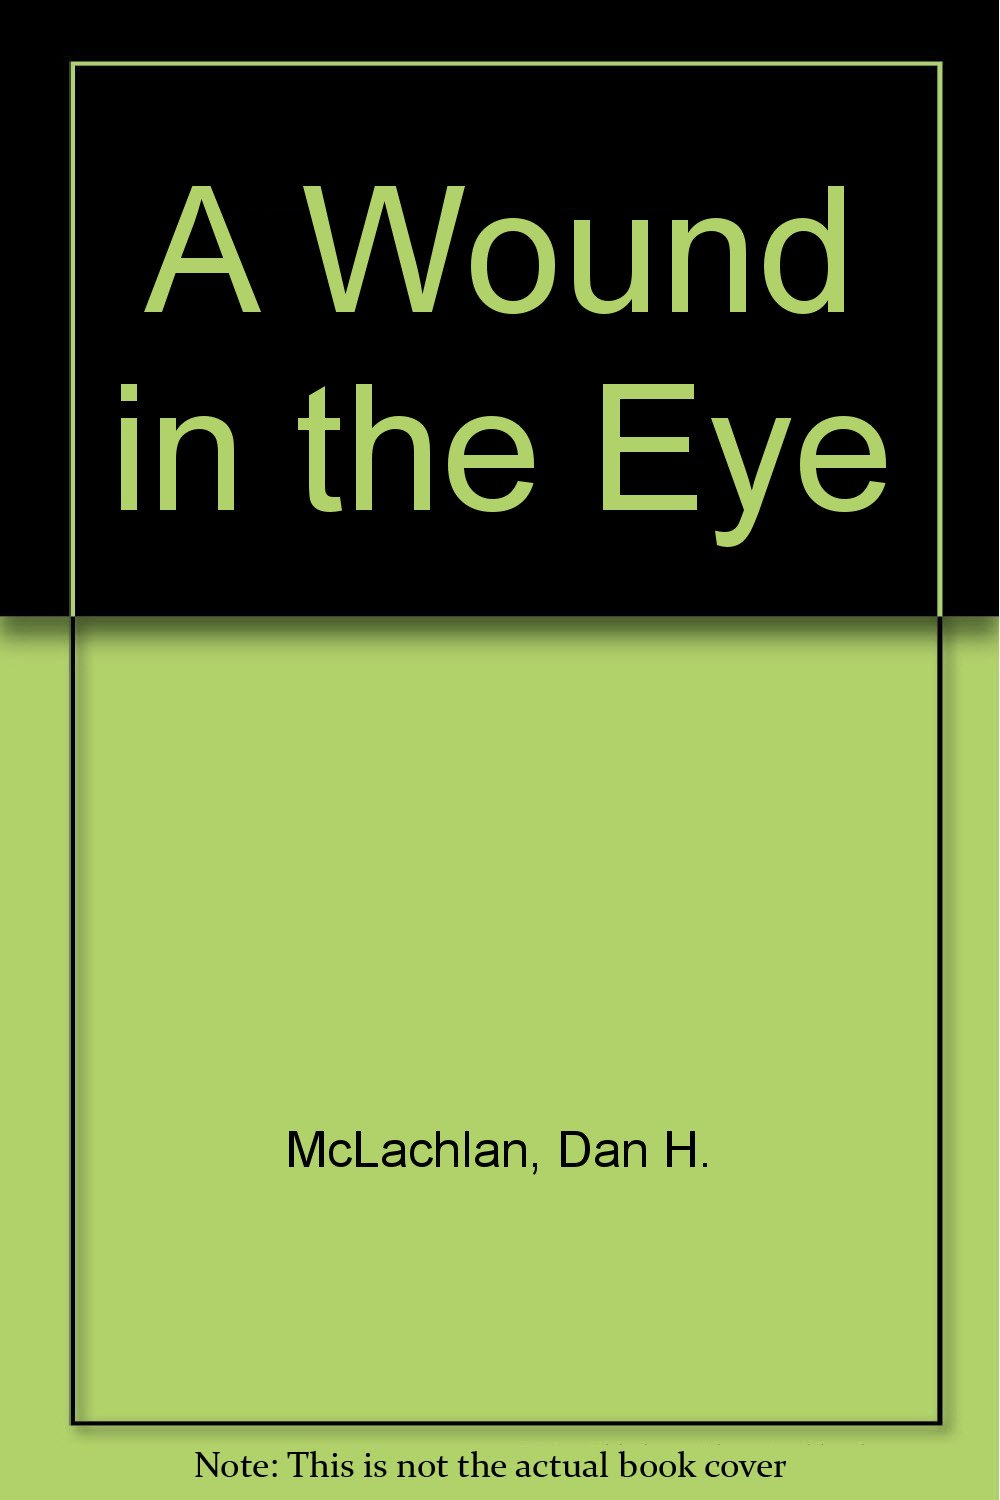 A Wound in the Eye, McLachlan, Dan H.